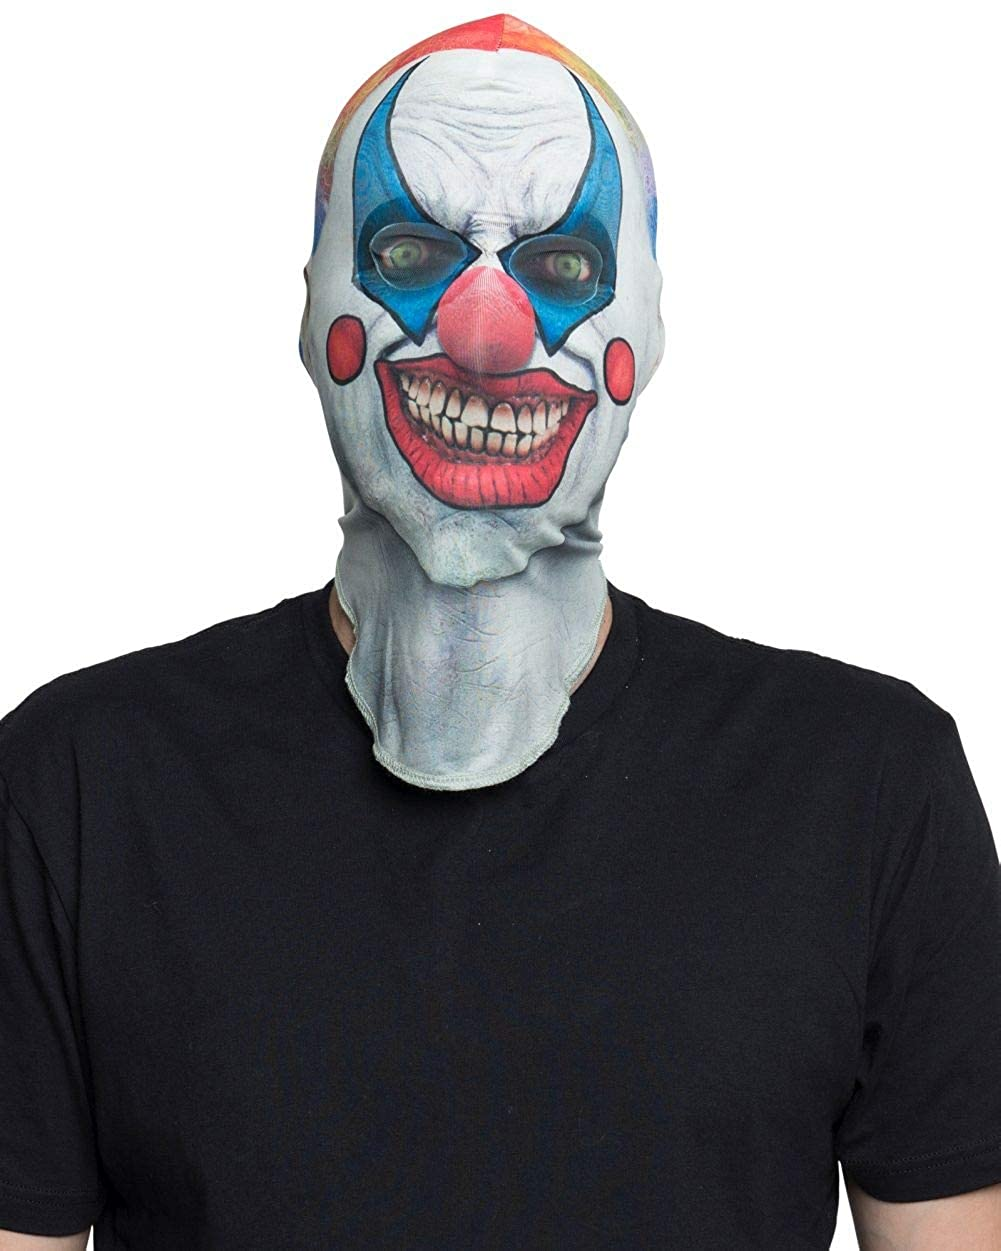 Faux Real Unisex-Adults 3D Photo-Realistic Halloween Full Fabric Face Mask